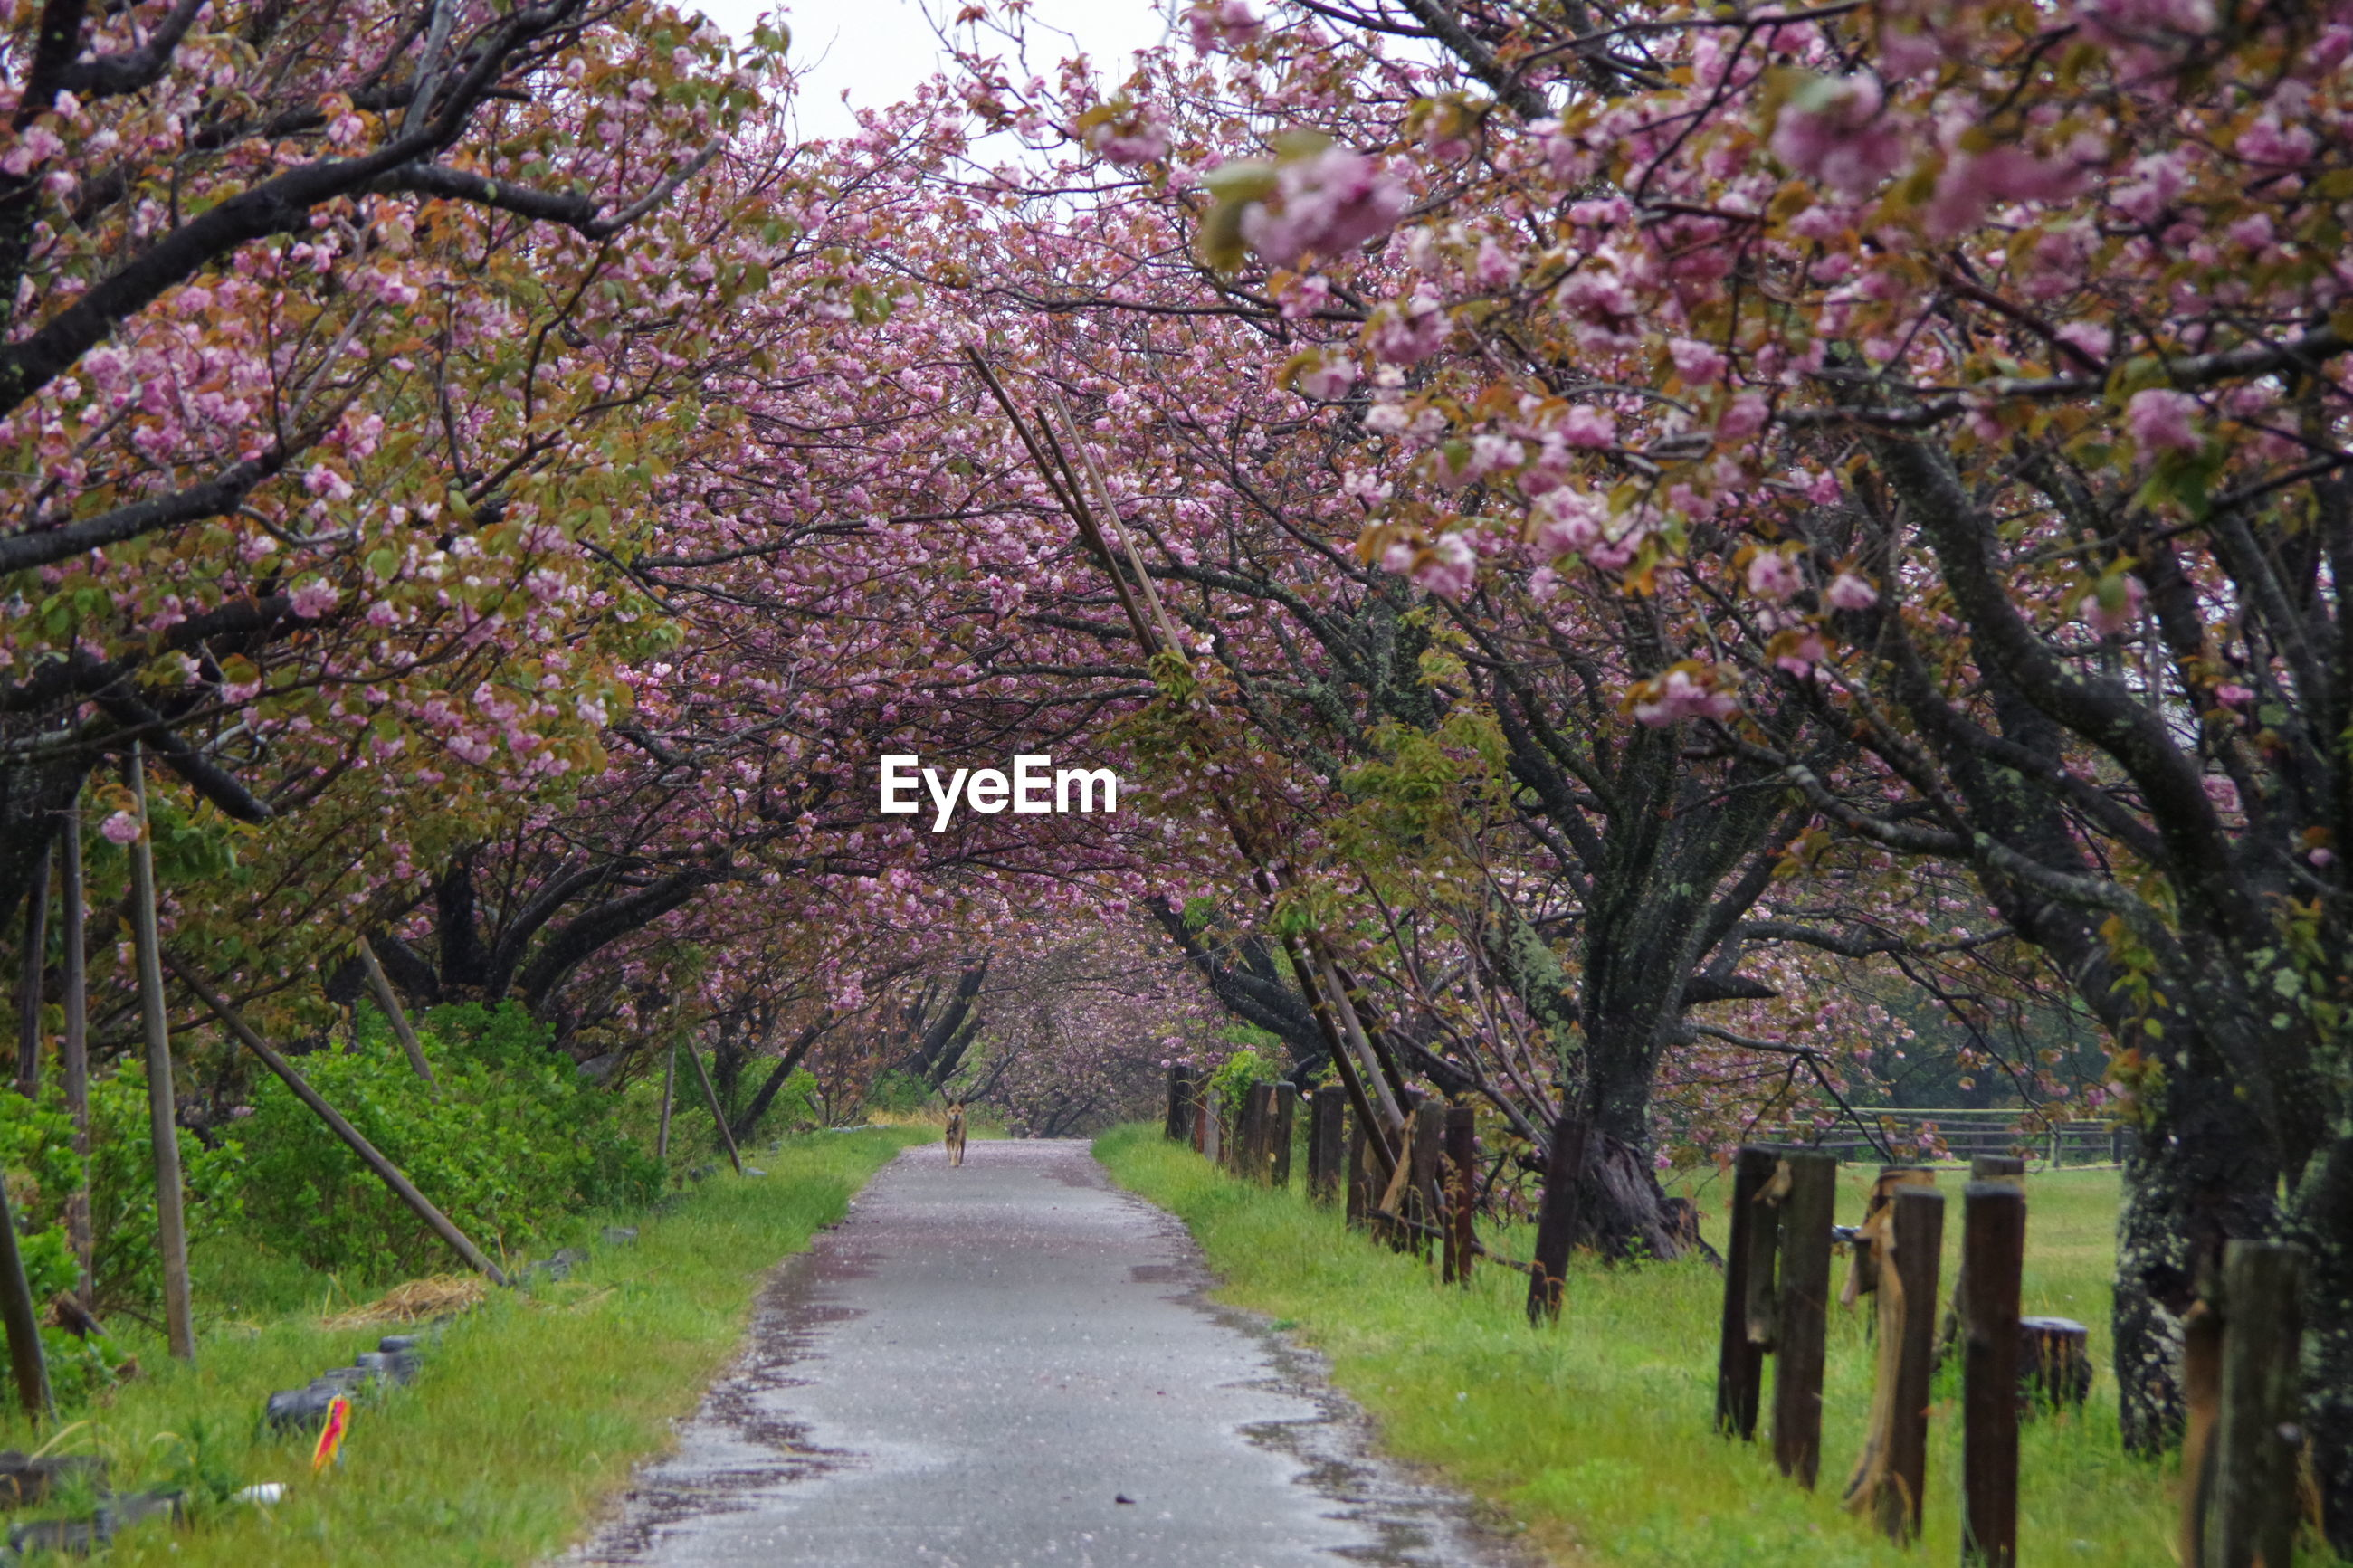 VIEW OF CHERRY BLOSSOMS IN PARK